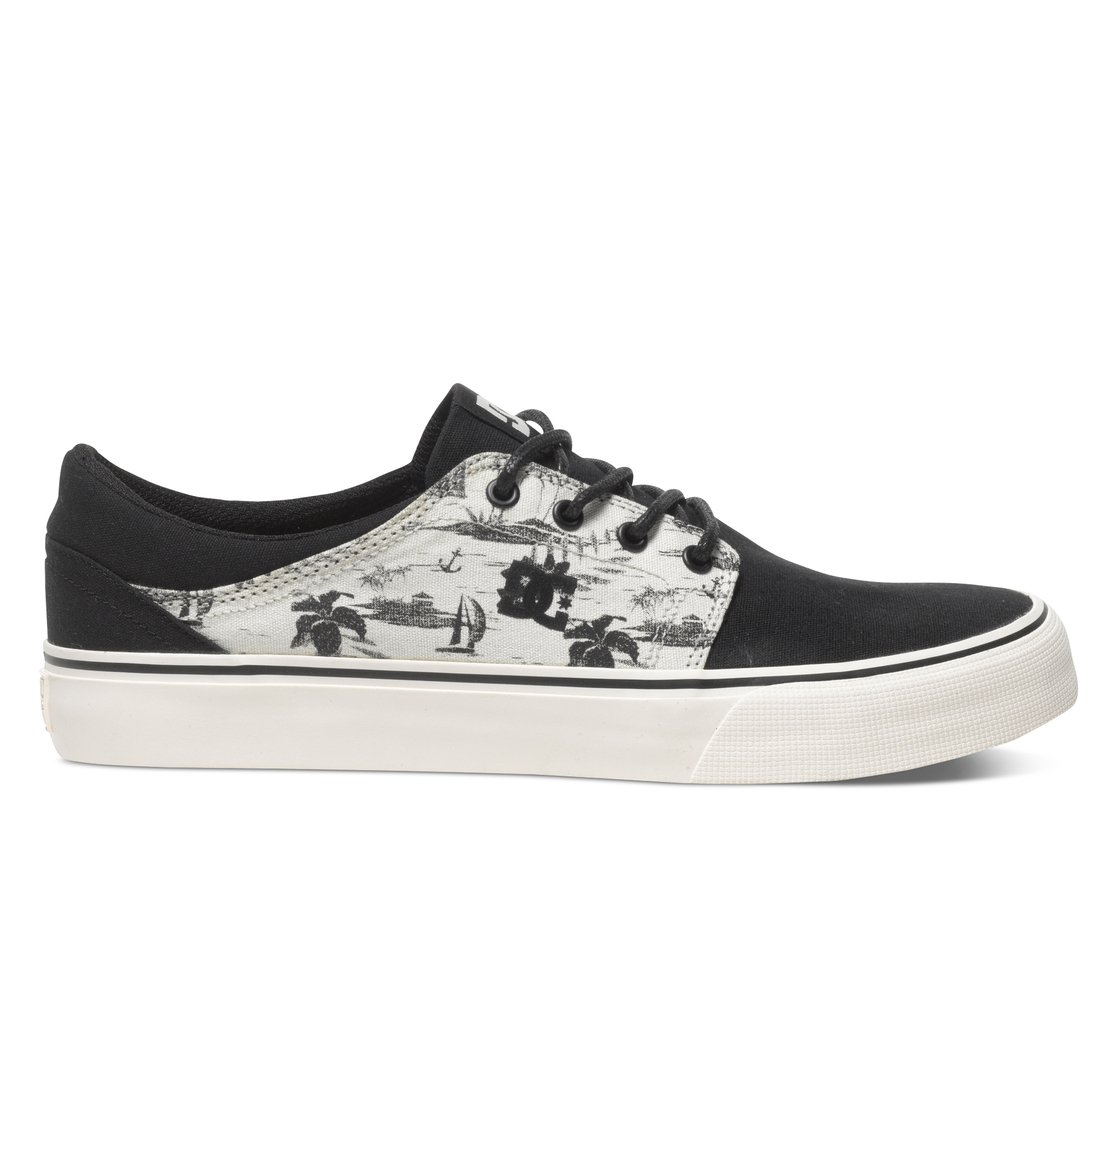 Trase SP - Dcshoes������ ������� ���� Trase SP �� DC Shoes. <br>��������������: ��������������� ������ � ������� ��������������� ����, ���� �� �������� � �������� � ����������� �������, ����� � ���������, ������������� ������� ������, ��������� ��� �������� � ������������� ���������� � ����������� DC, ����������������� �����������, ������������� ���������� �������, ��������� ������� ���������� ������� DC Pill Pattern. <br>������: ����: �������� / ���������: �������� / �������: ������.<br>